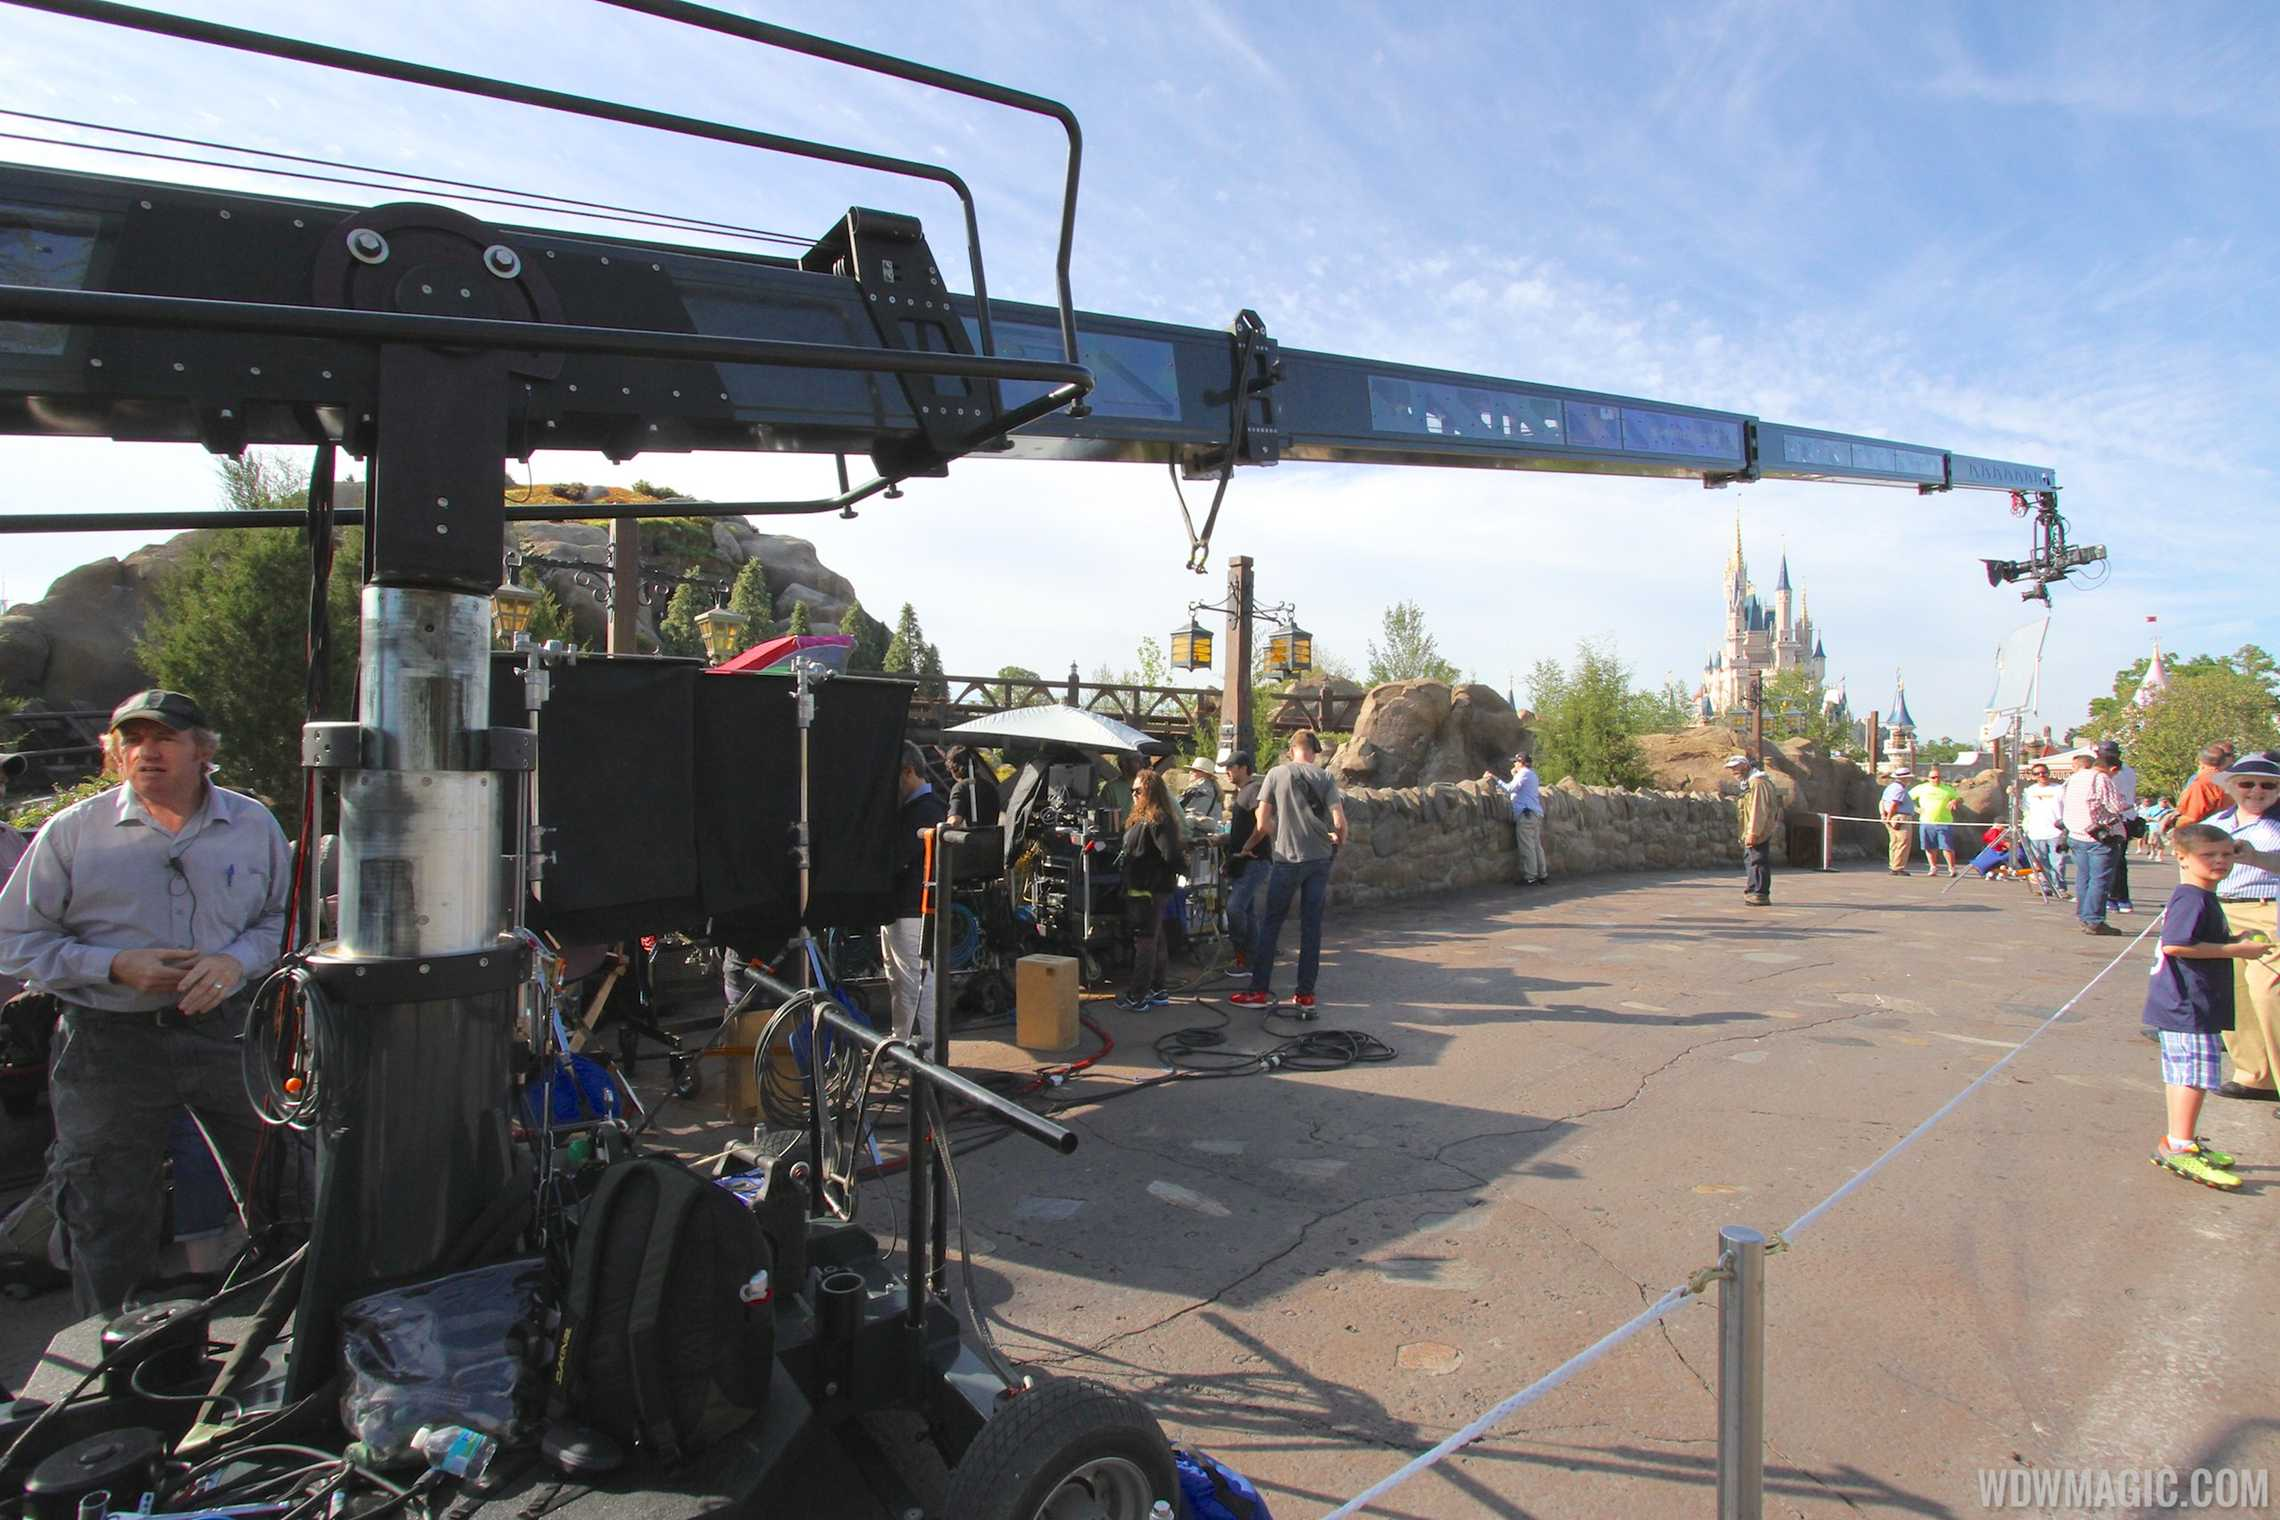 Film crews at the Seven Dwarfs Mine Train Coaster